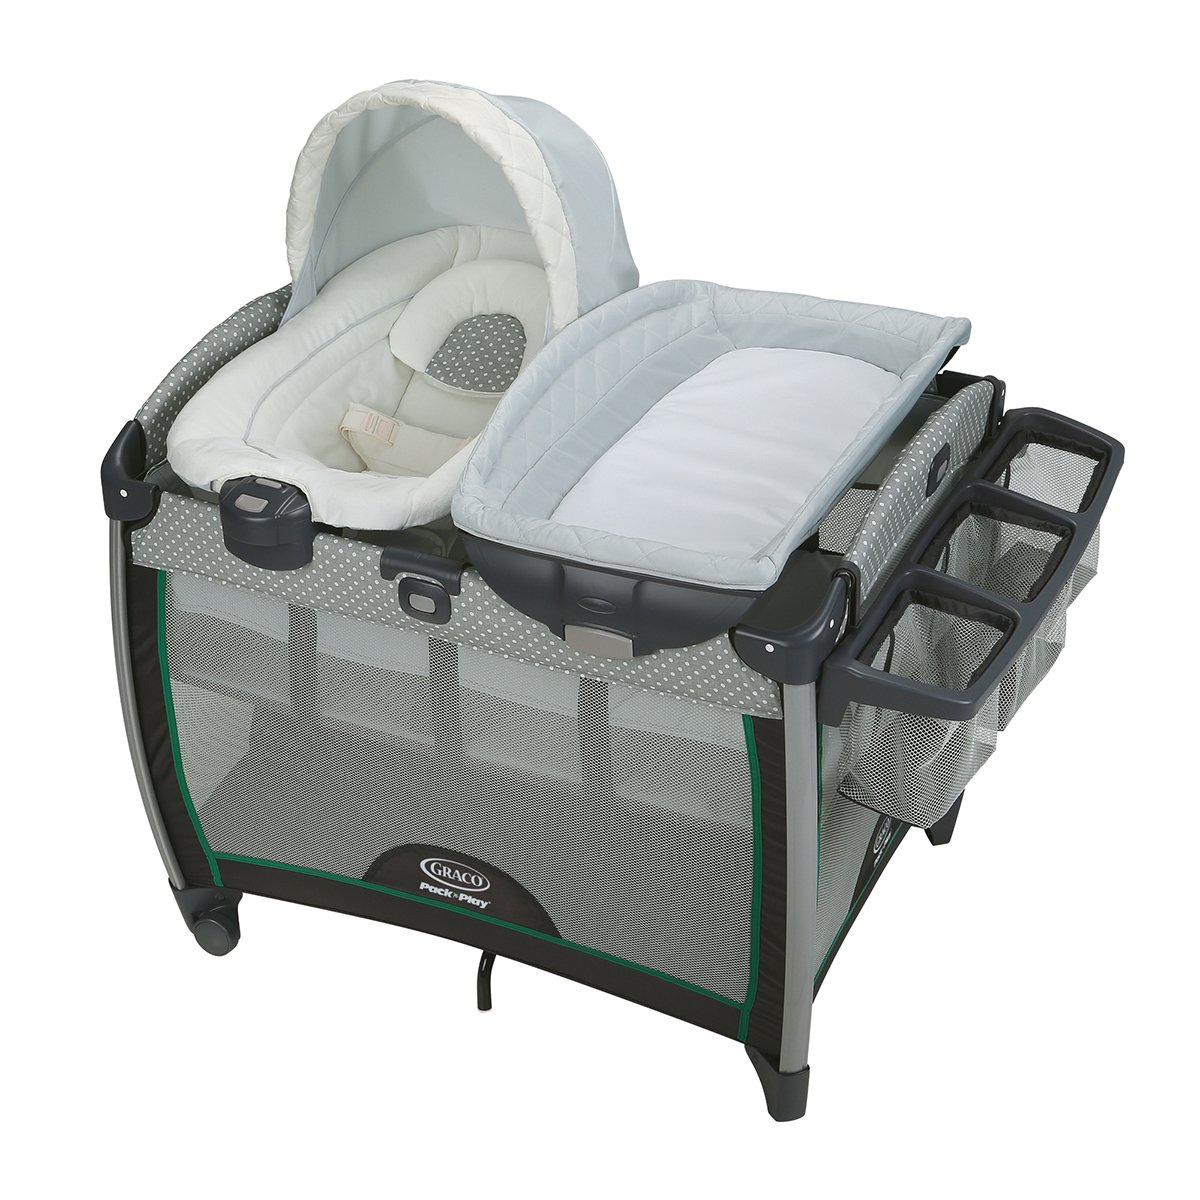 Amazon.com : Graco Pack 'n Play Quick Connect Portable Bouncer with  Bassinet, Albie : Baby